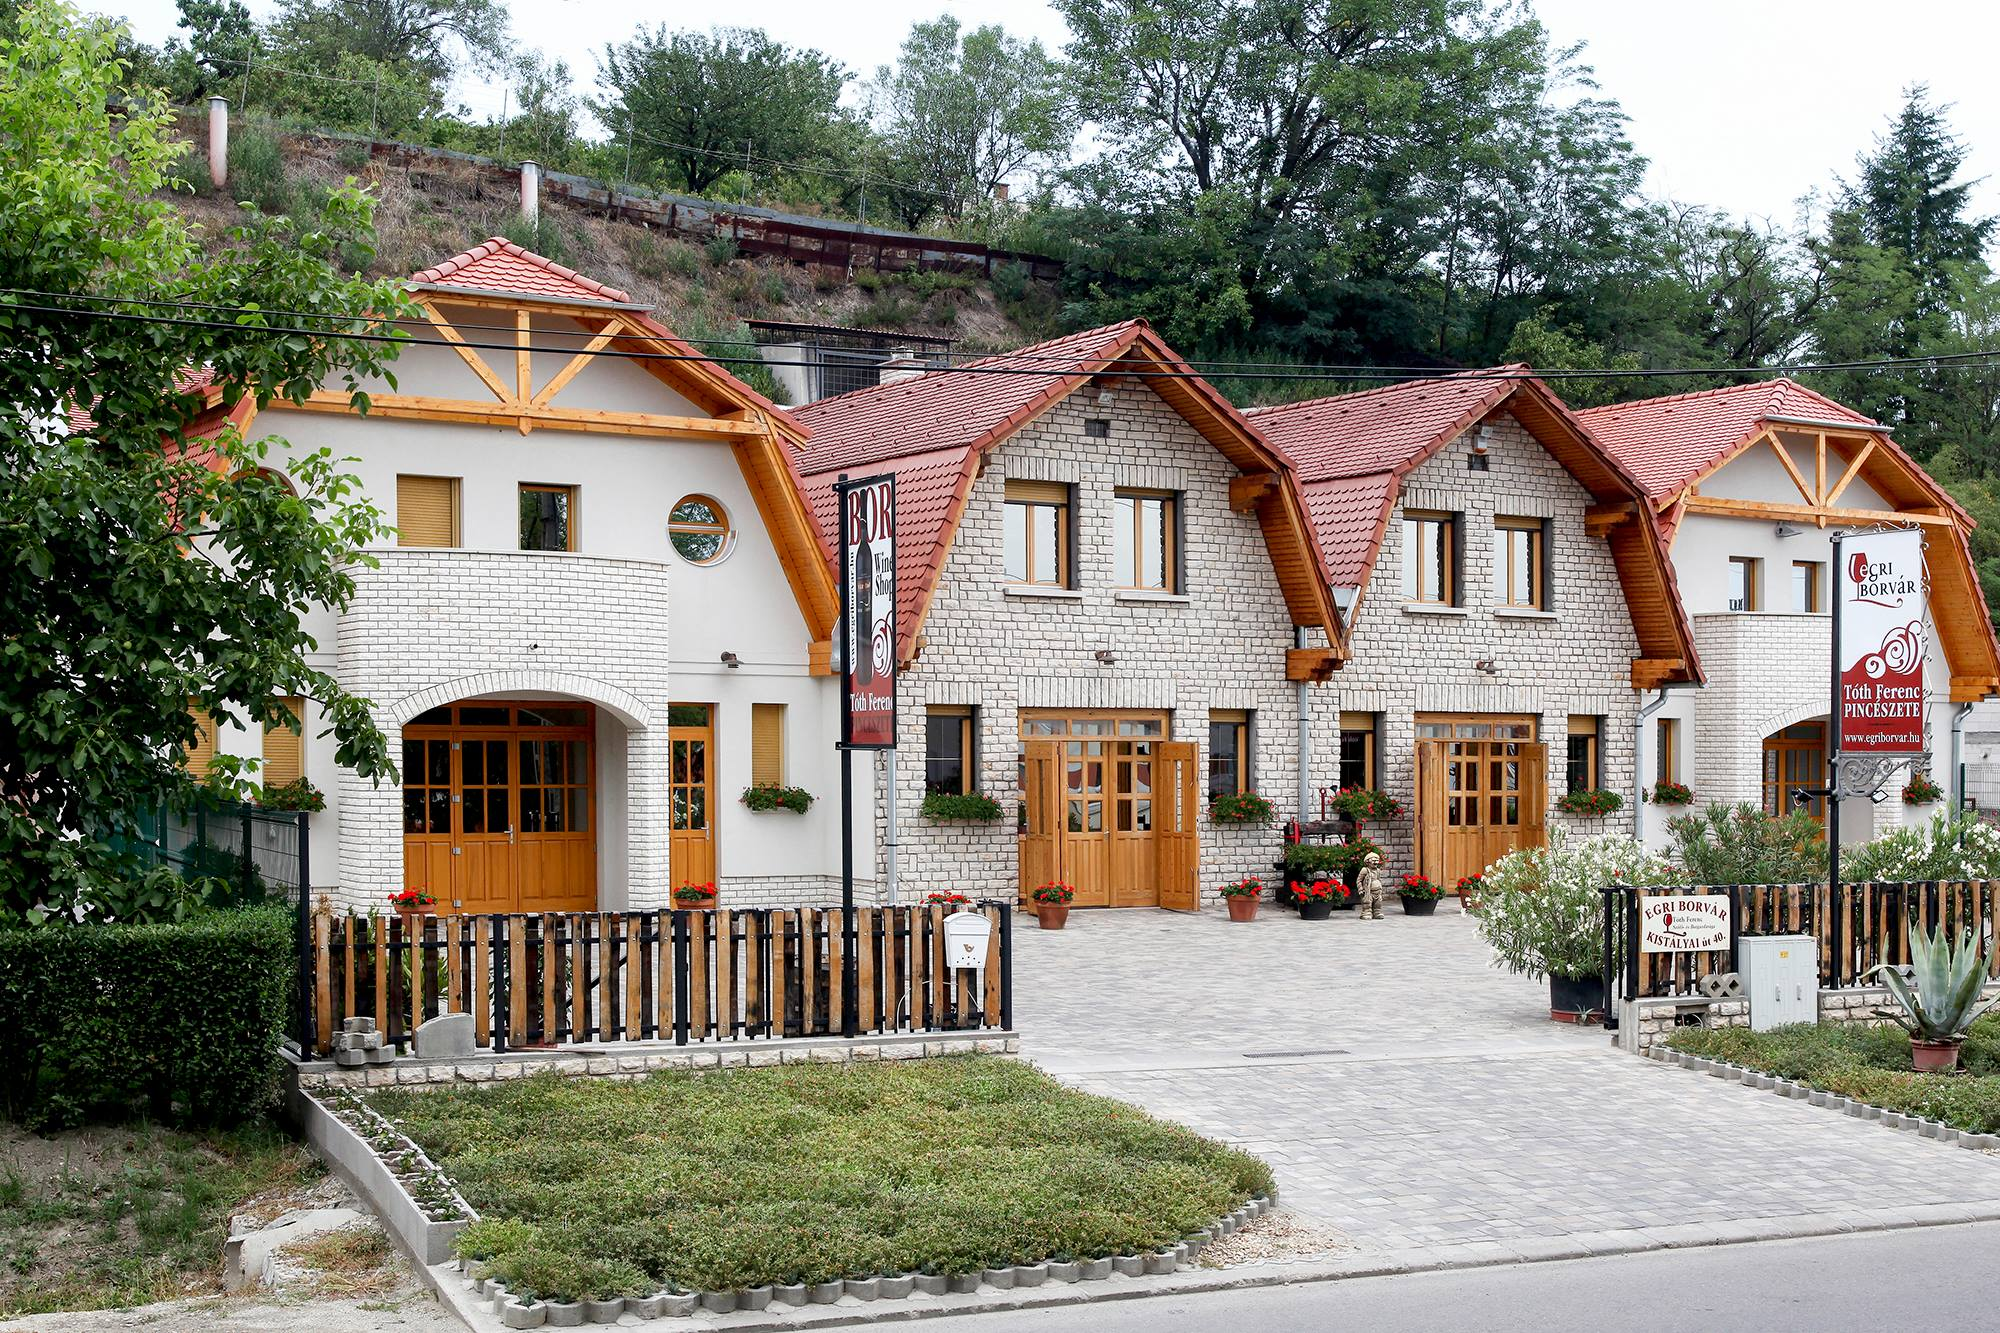 The Toth Ferenc Winery